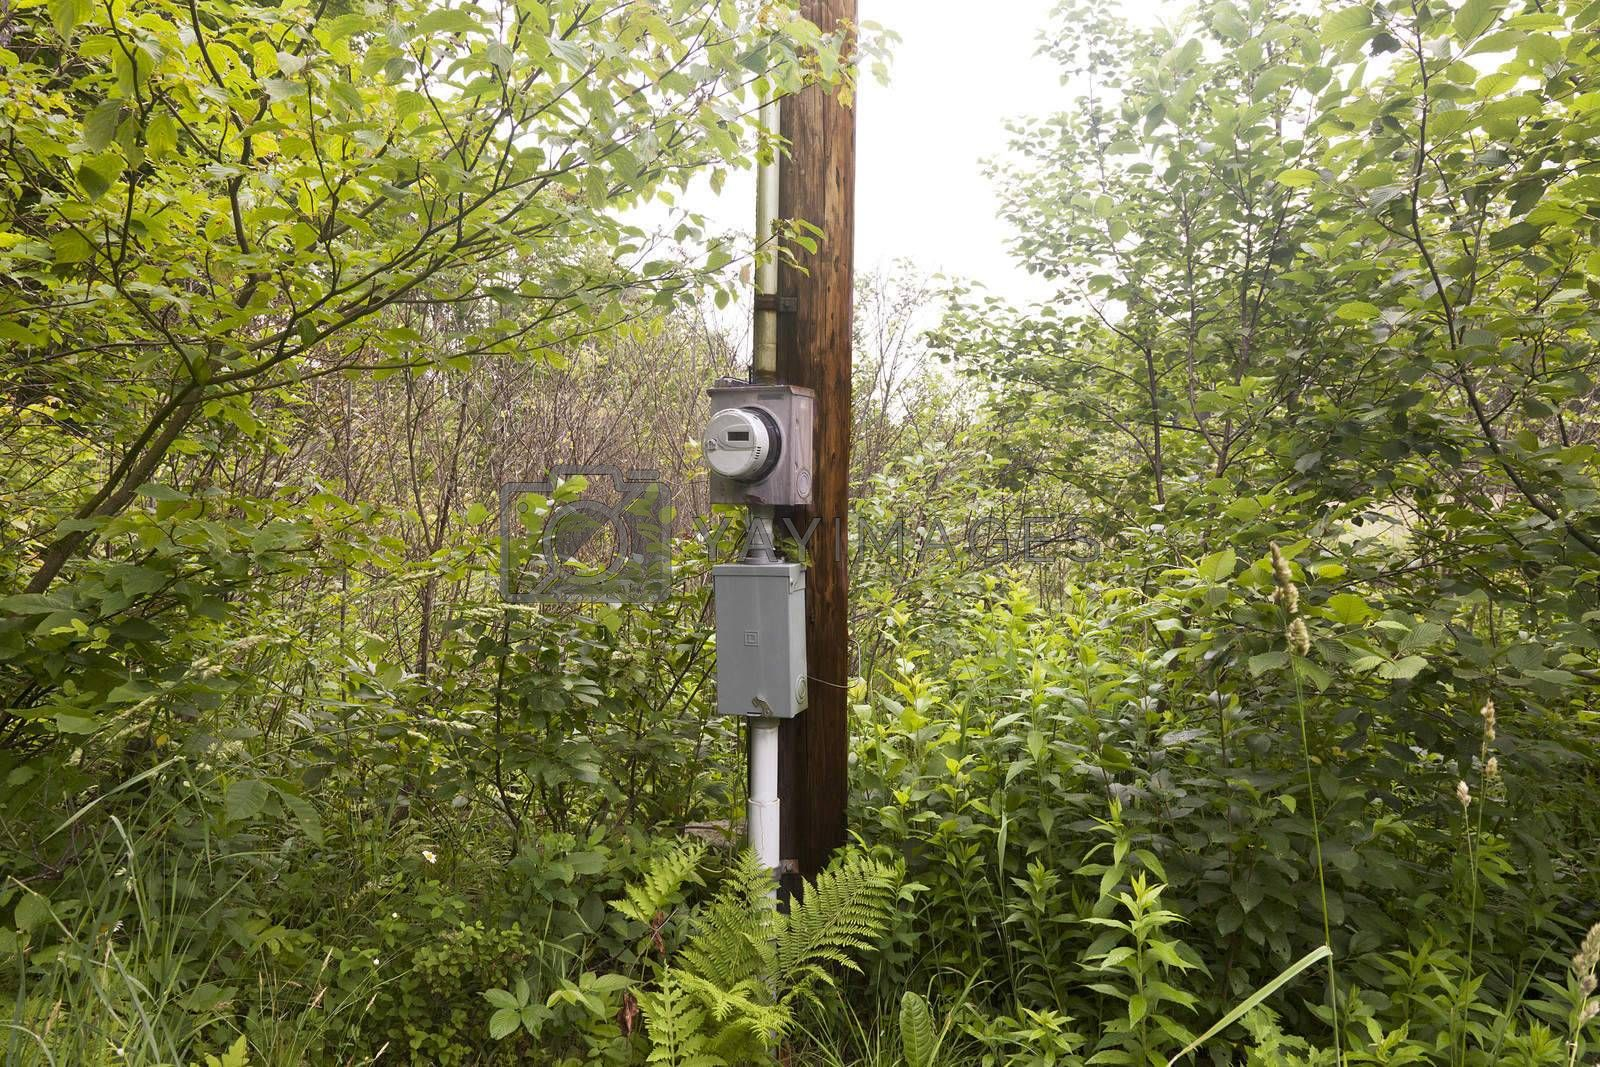 Royalty free image of Rural Electric Box by mothy20